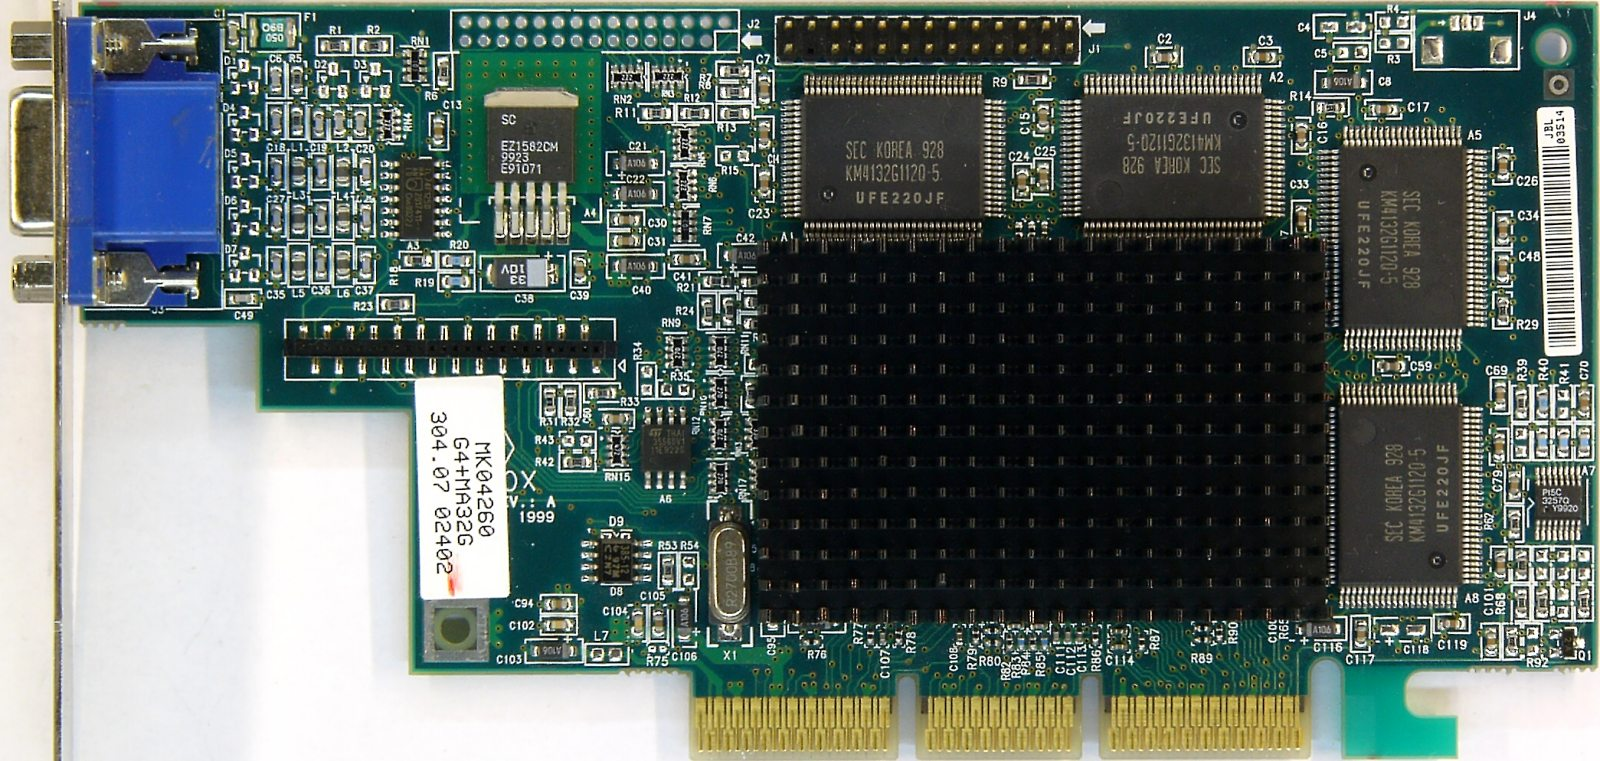 Drivers for older/legacy Matrox products